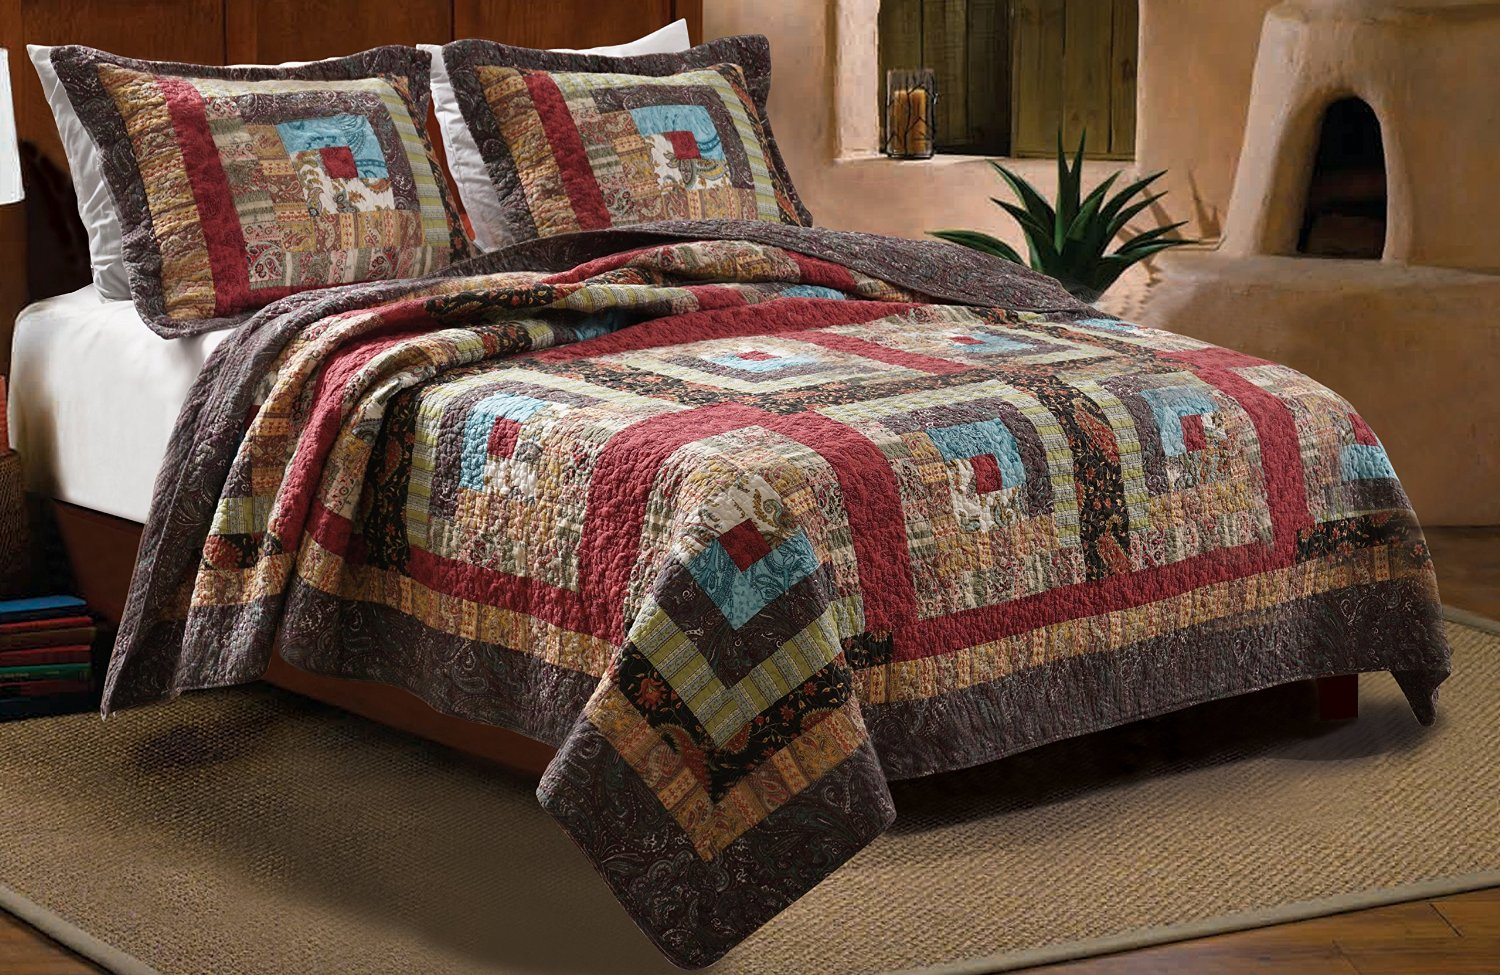 Primitive Country Quilt Rustic Bedding Set